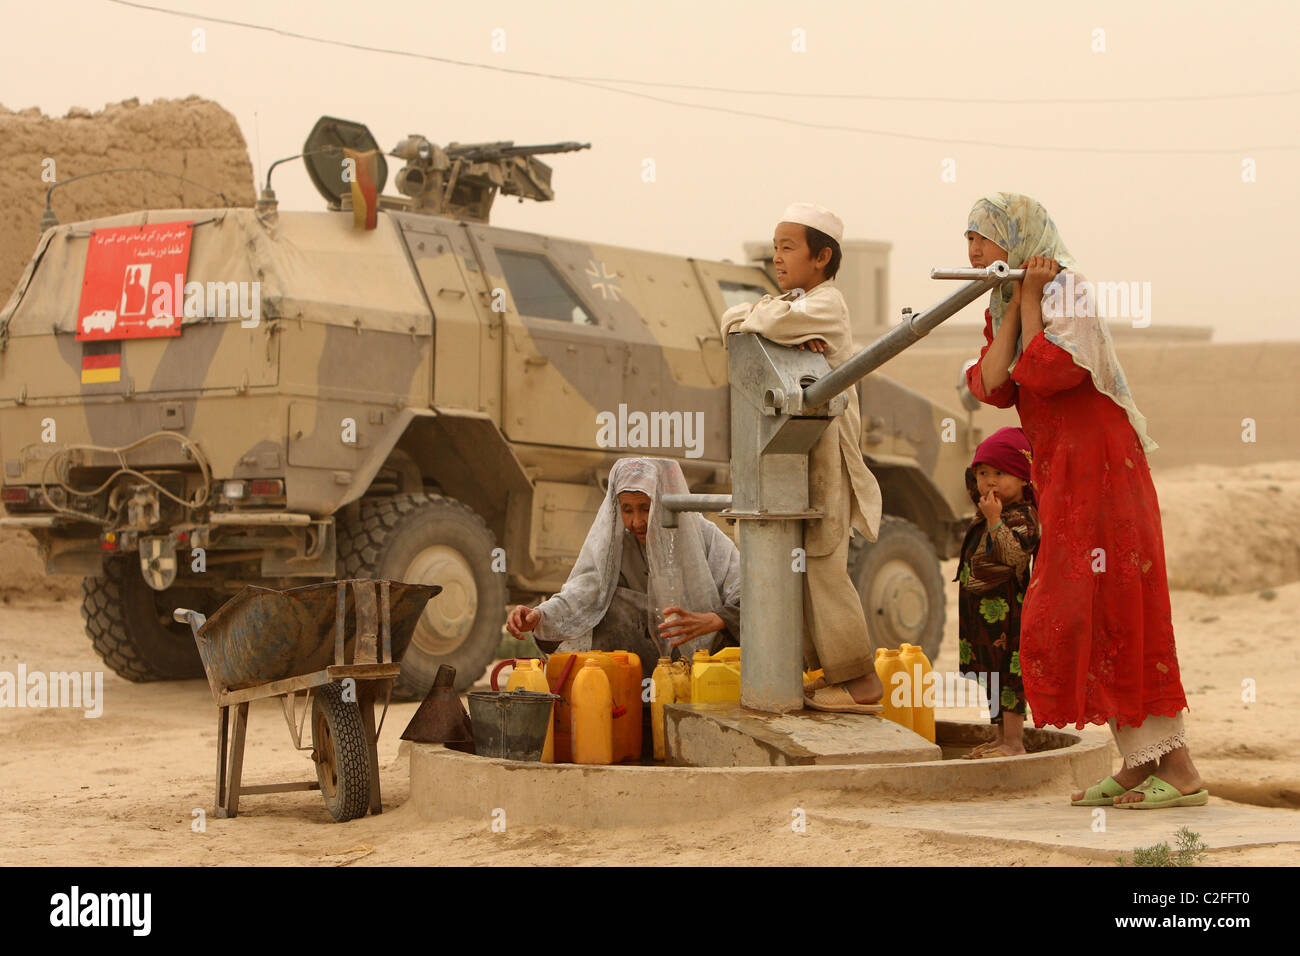 Locals pumping water from a water pump, Kunduz, Afghanistan - Stock Image